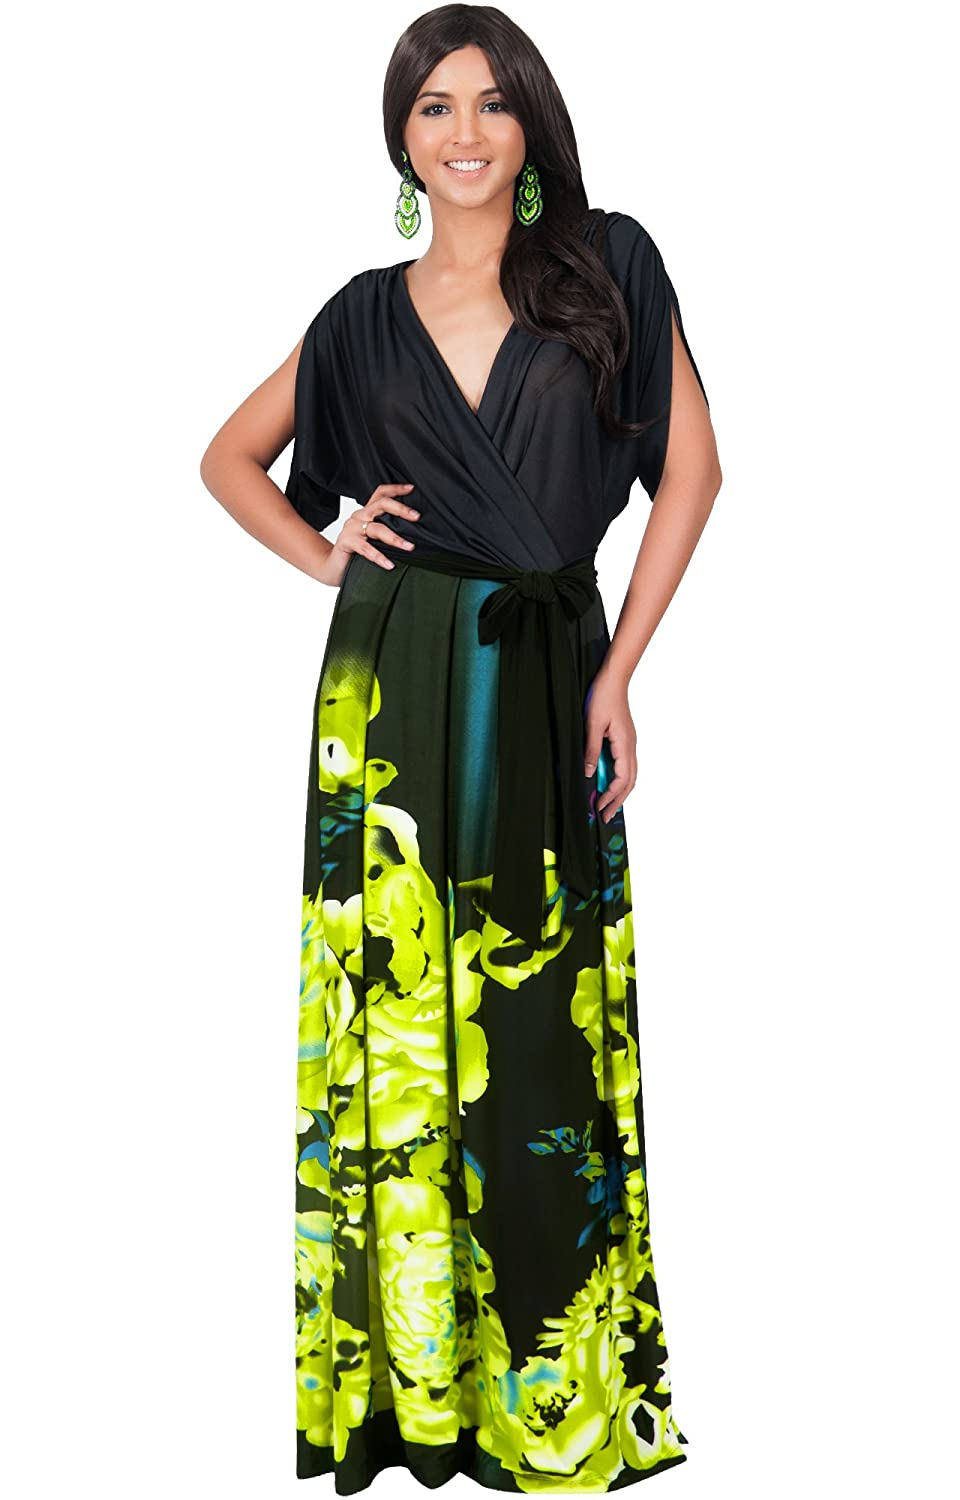 474b5b42fe9e GARMENT CARE - Hand or machine washable. Can be dry-cleaned if desired.  PLUS SIZE - This beautiful short sleeve print maxi dress design is also  available in ...